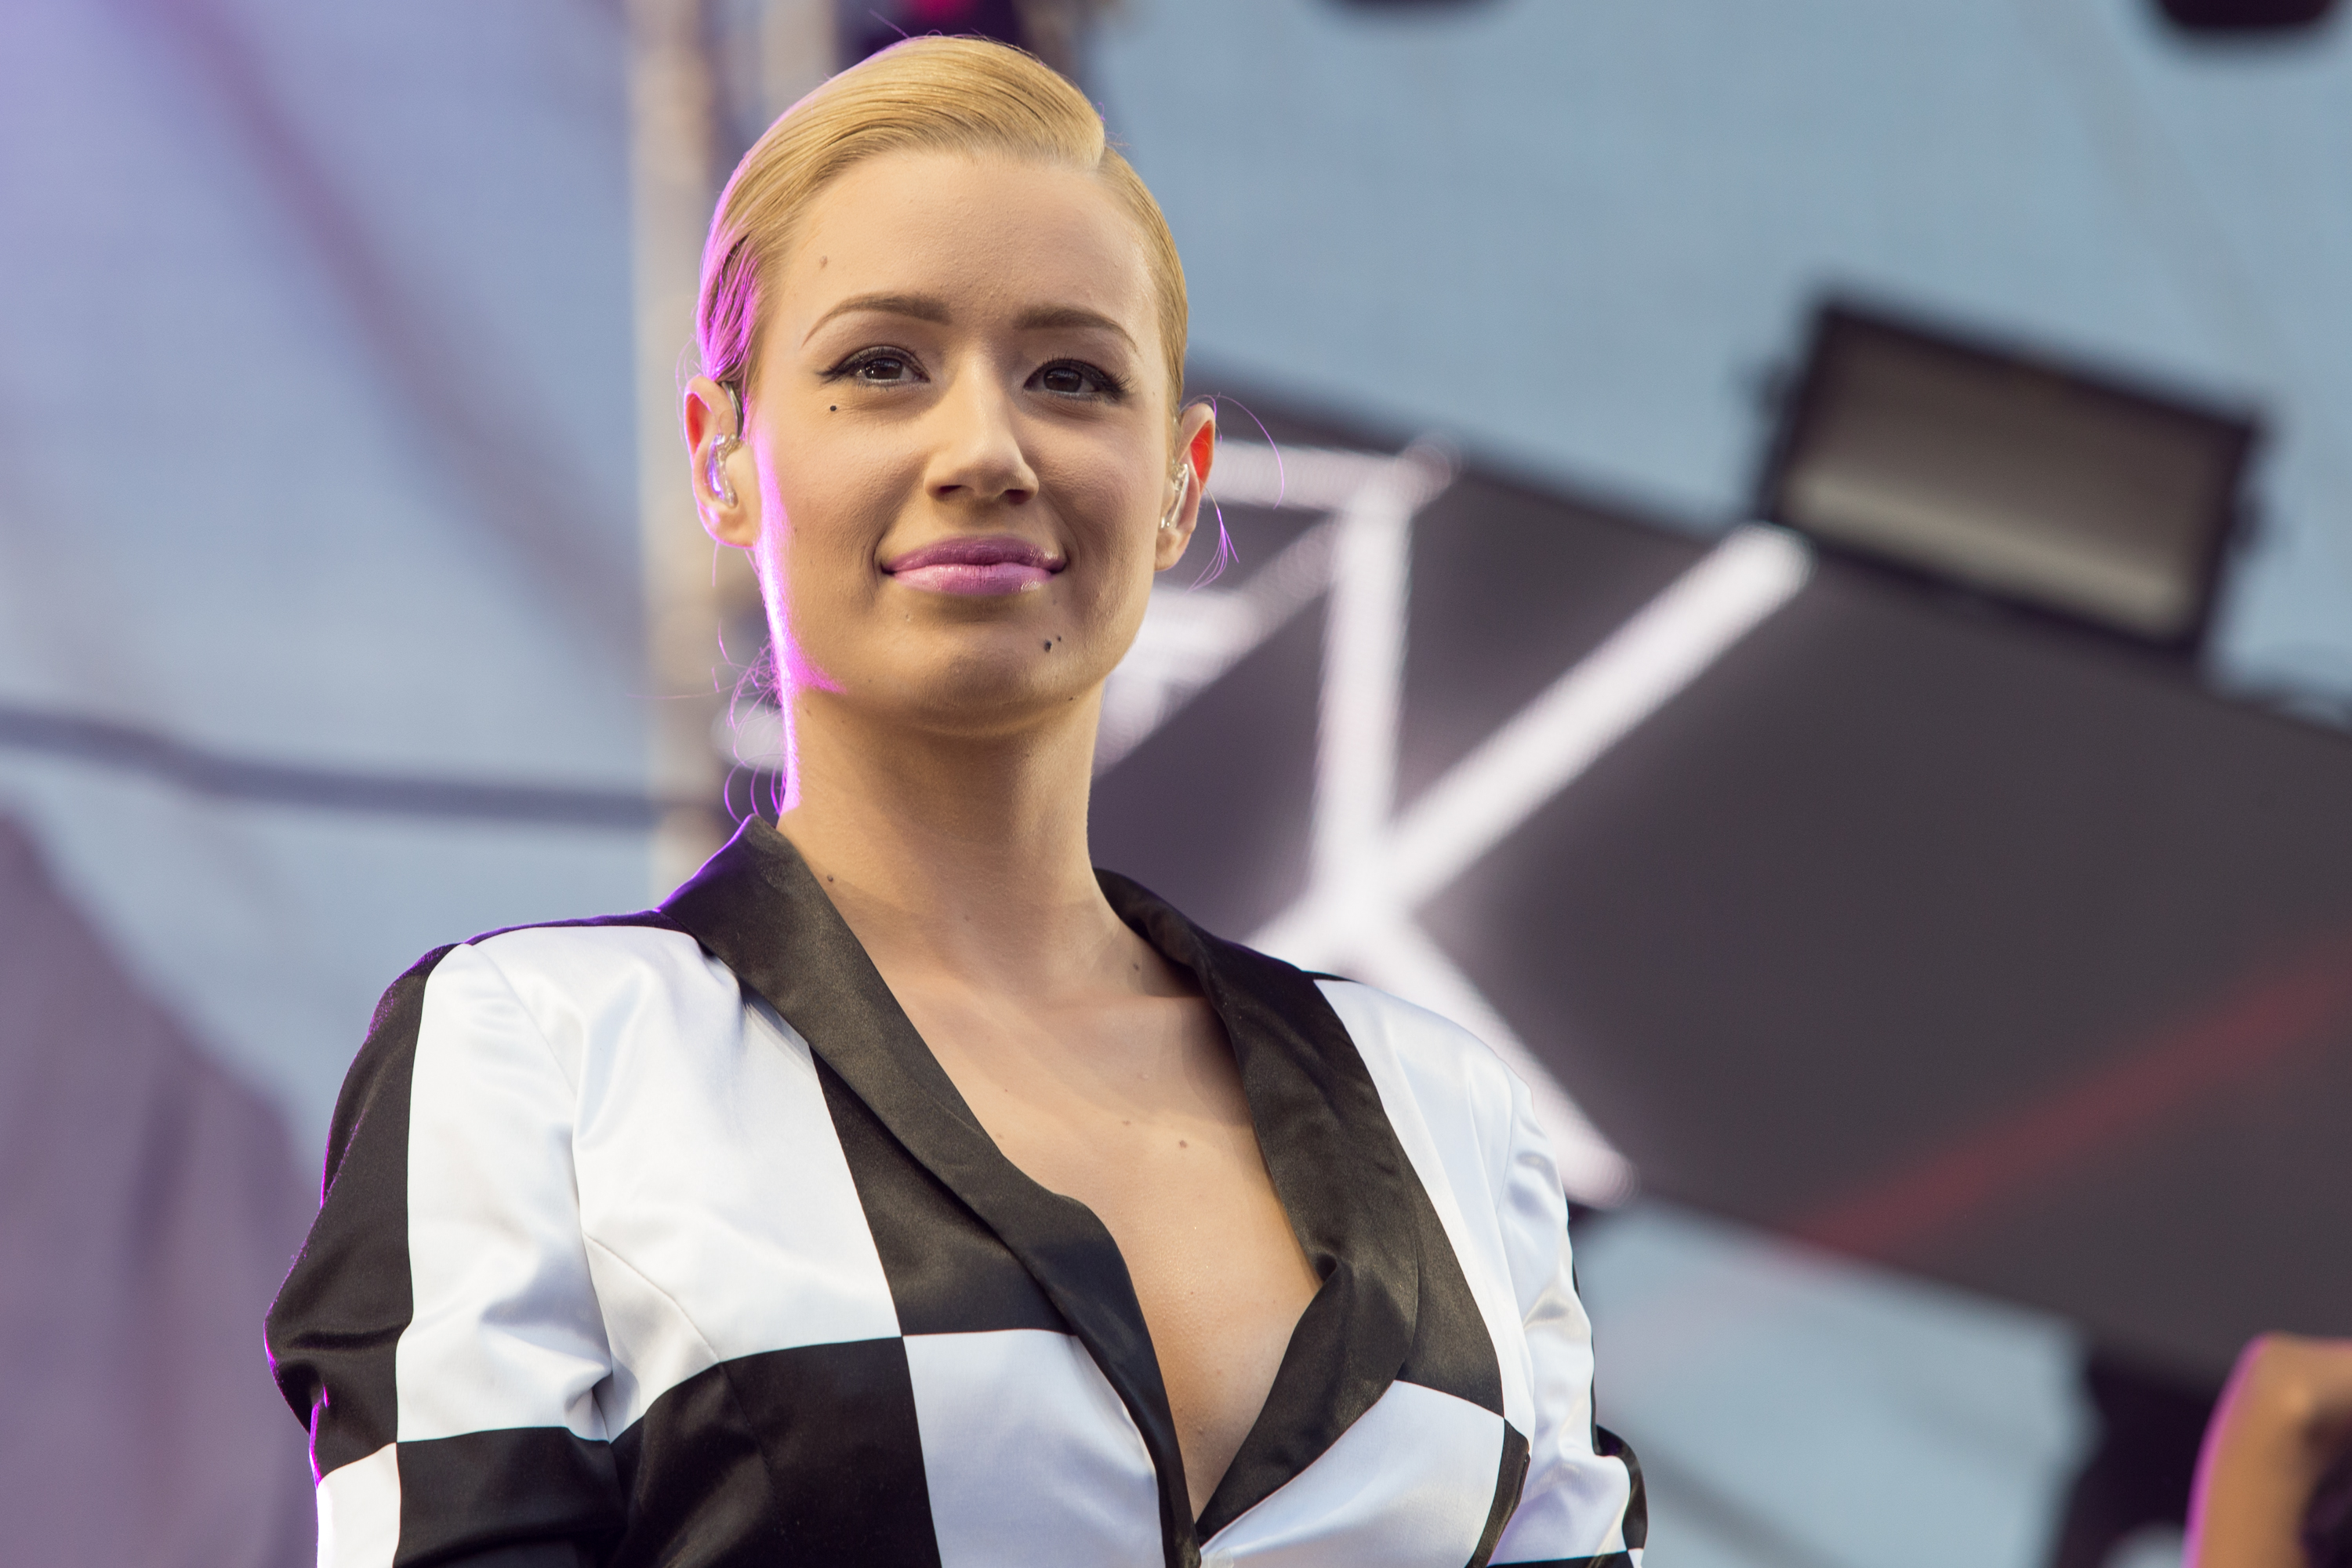 Iggy Azalea performs on stage at 102.7 KIIS FM's Wango Tango at the StubHub Center on May 10, 2014, in Carson, Calif.